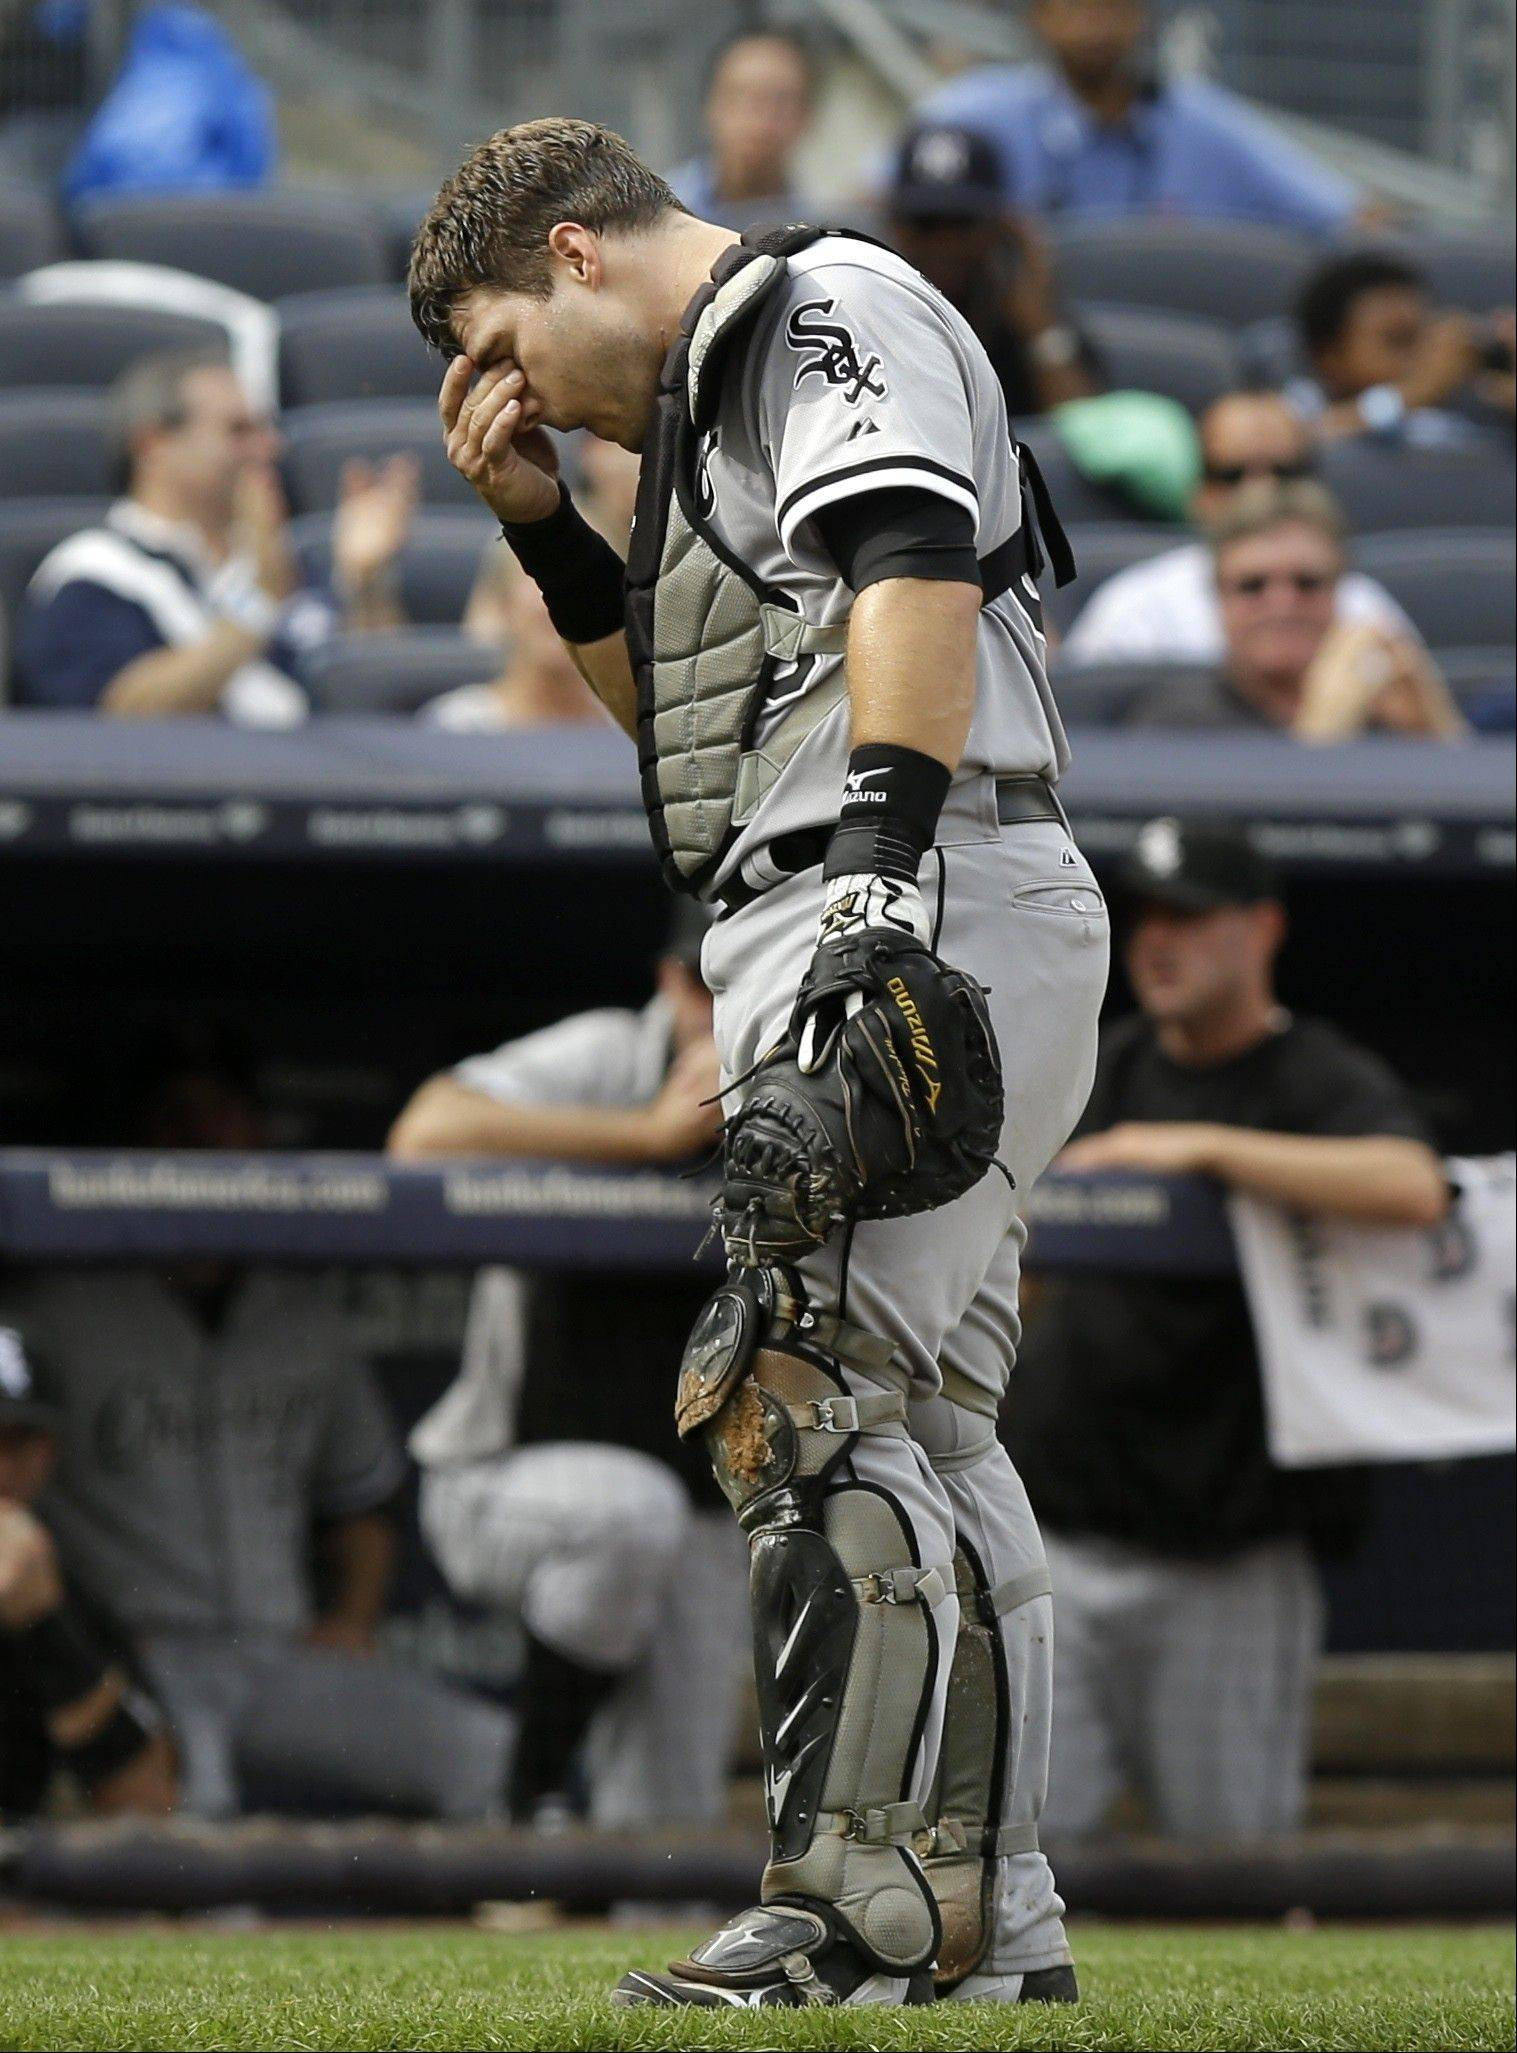 White Sox catcher Josh Phegley has struggled after starting his major-league career on a hot streak.